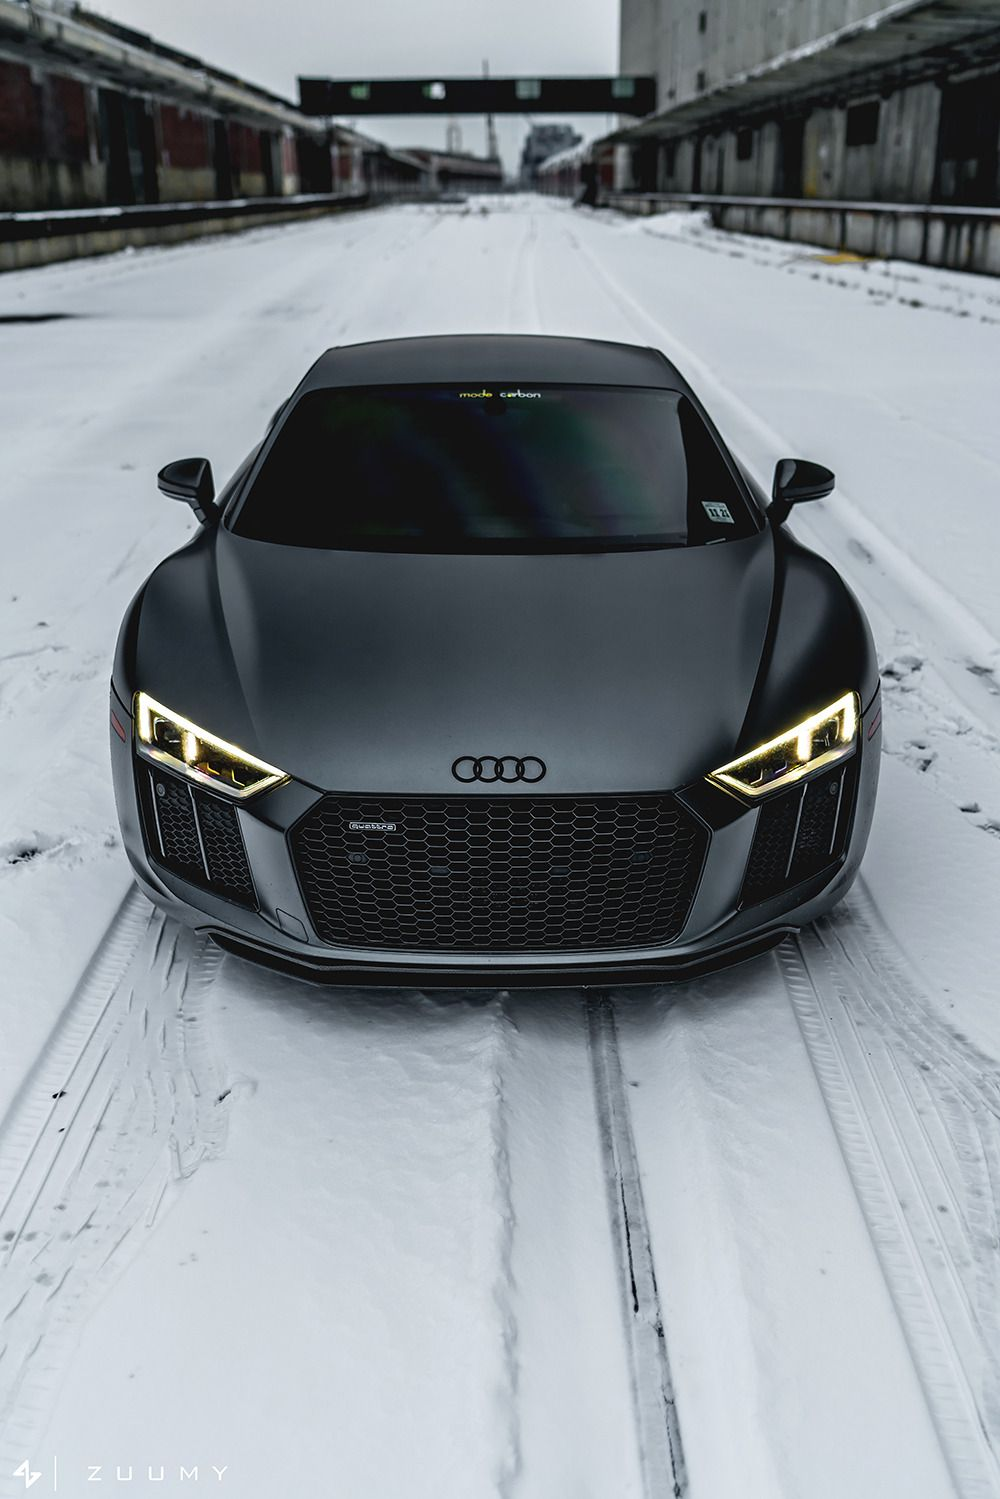 Motivationsforlife Matte Daytona Grey Audi R8 V10 Plus By Sam A